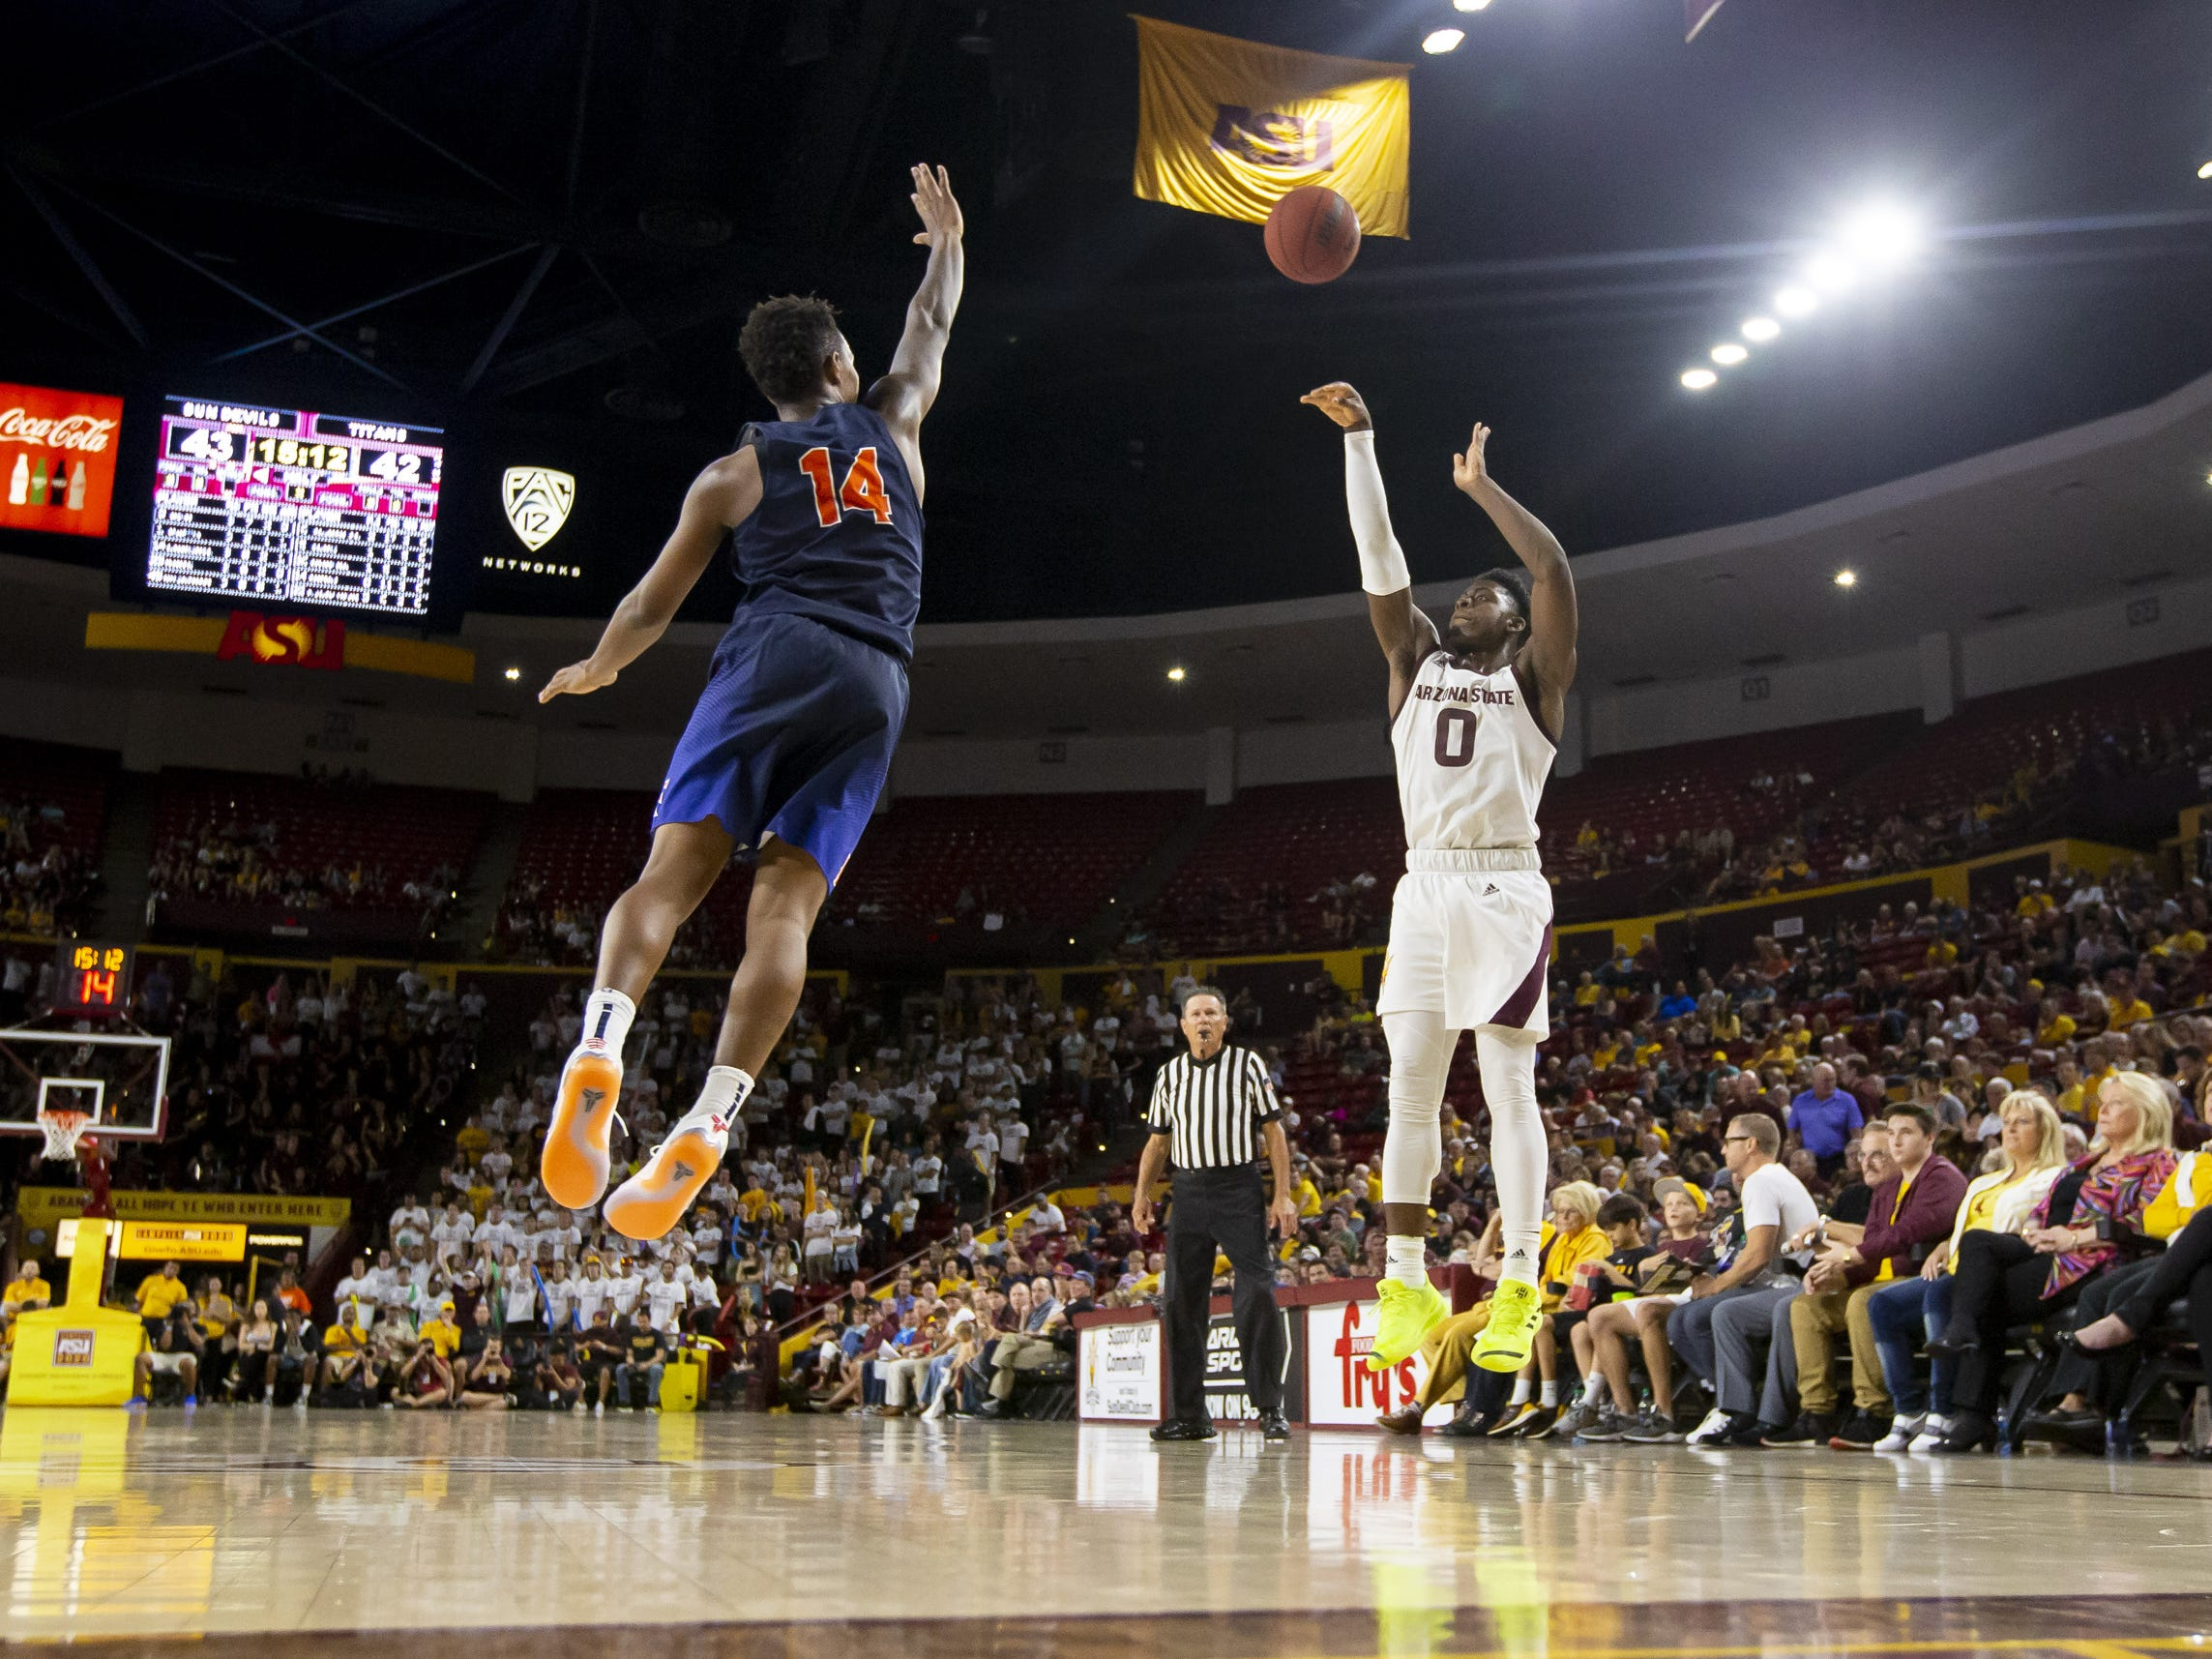 Guard Luguentz Dort (0) of the Arizona State Sun Devils shoots a three-pointer against guard Khalil Ahmad (14) of the Cal State Fullerton Titans at Wells Fargo Arena on Tuesday, November 6, 2018 in Tempe, Arizona.